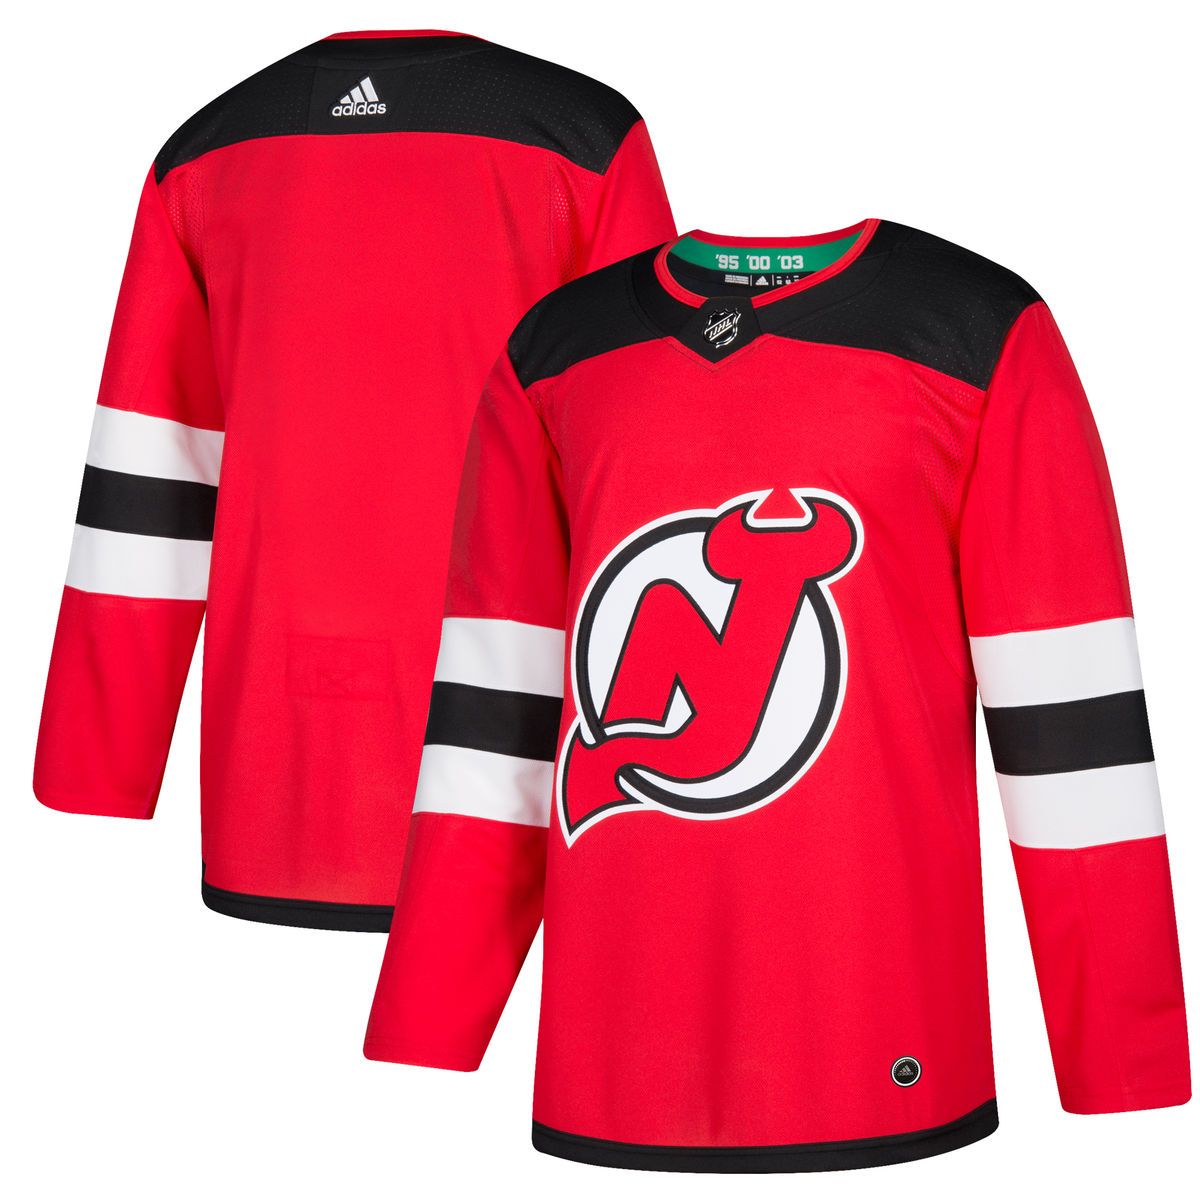 1b2664f65 Ships within 2 business days. OFFICIALLY LICENSED - New Jersey Devils Jersey  Home Adidas Authentic